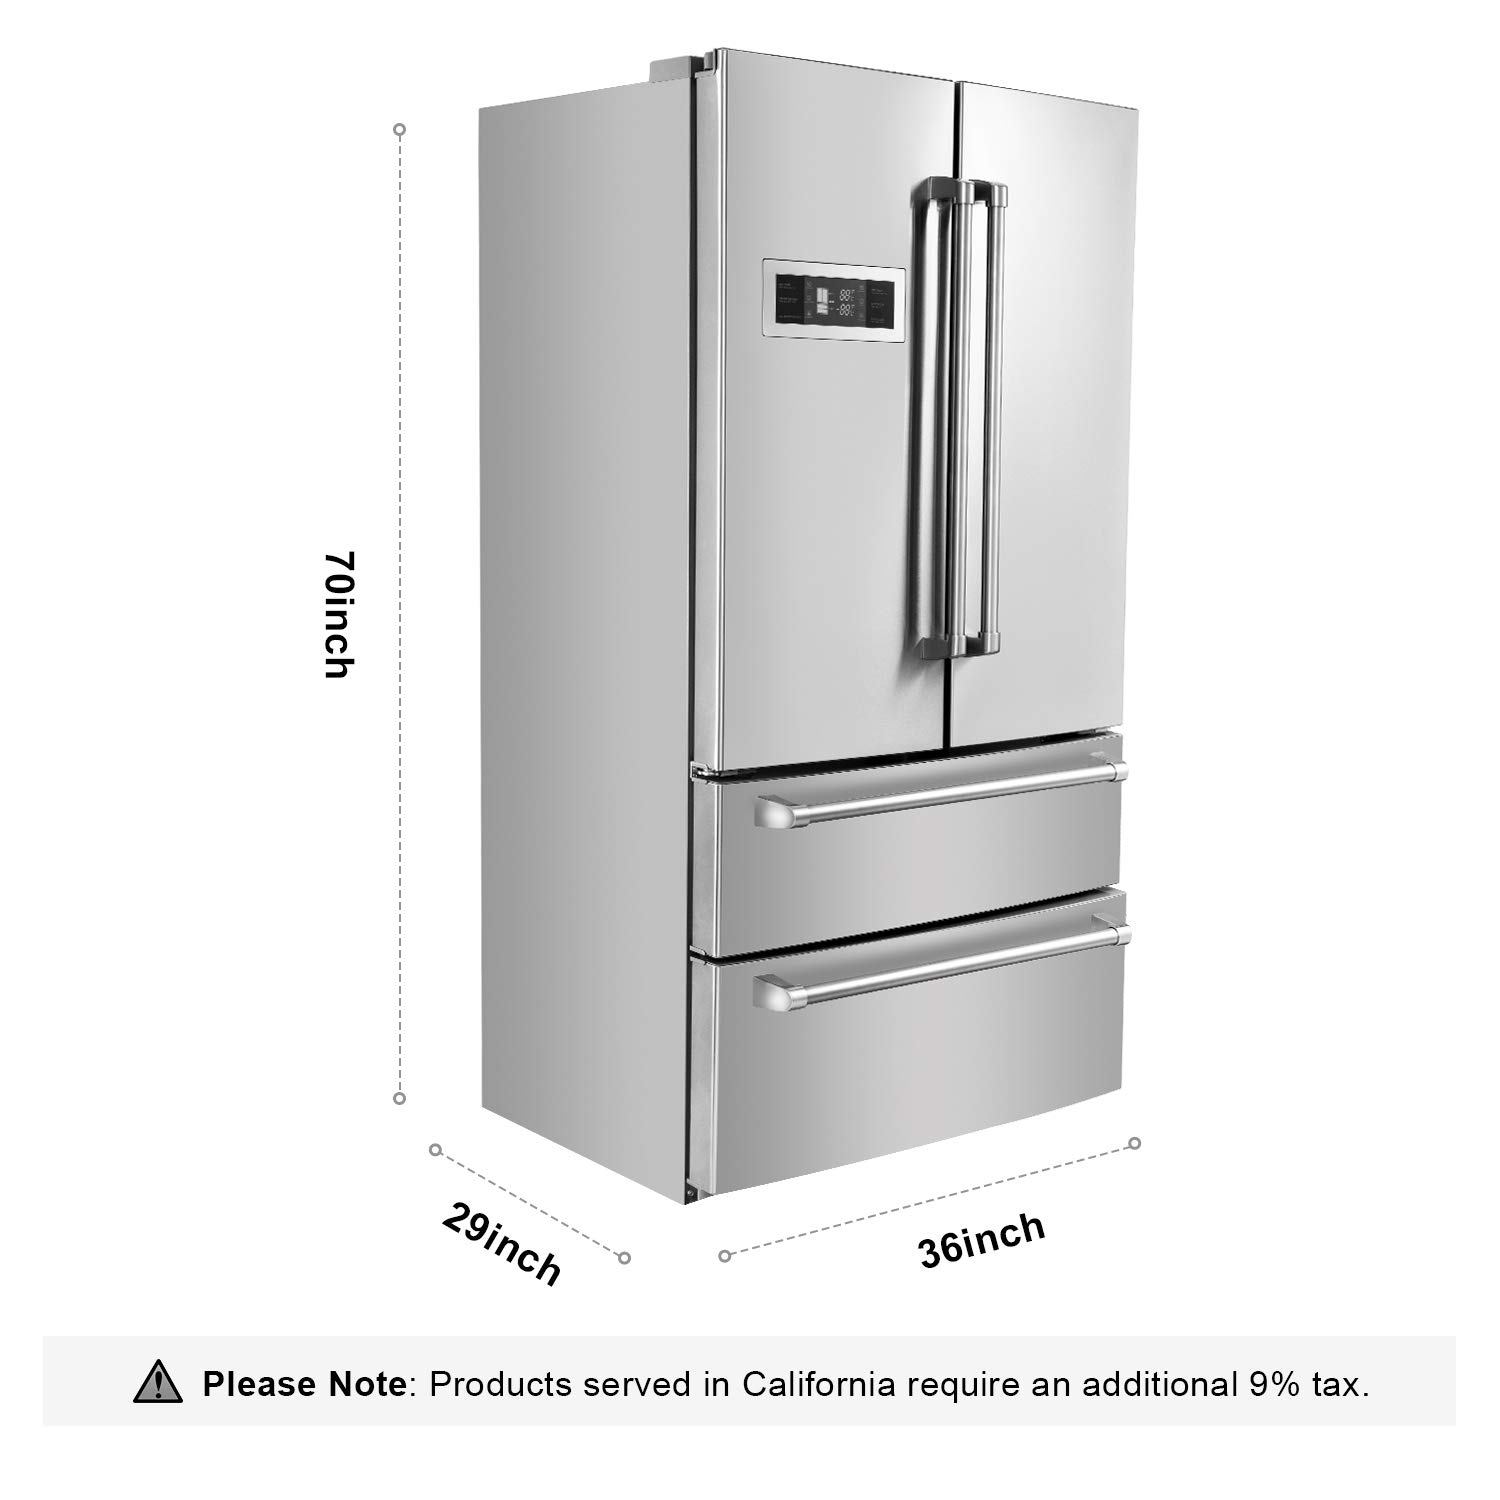 Thor Kitchen 36 Inch Counter Depth French Door Refrigerator | SBW